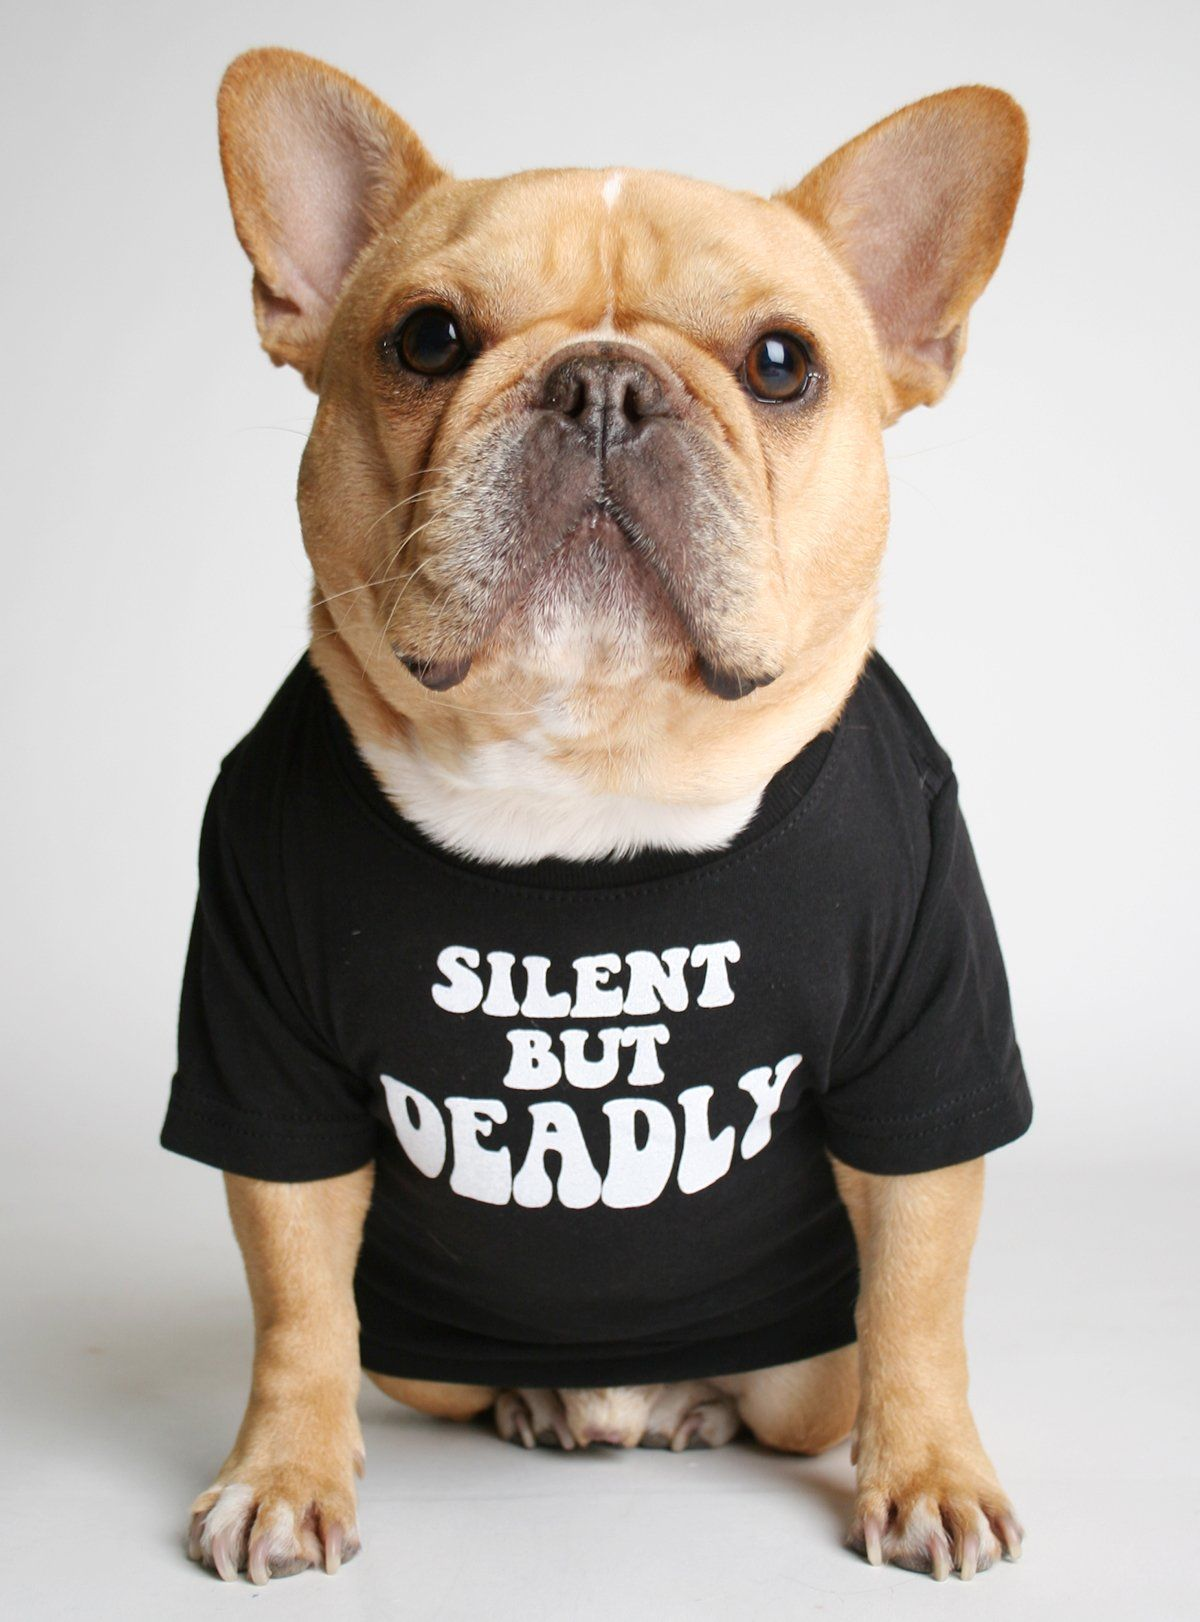 Silent But Deadly Dog Tee Dogs Tee French Bulldog Puppies